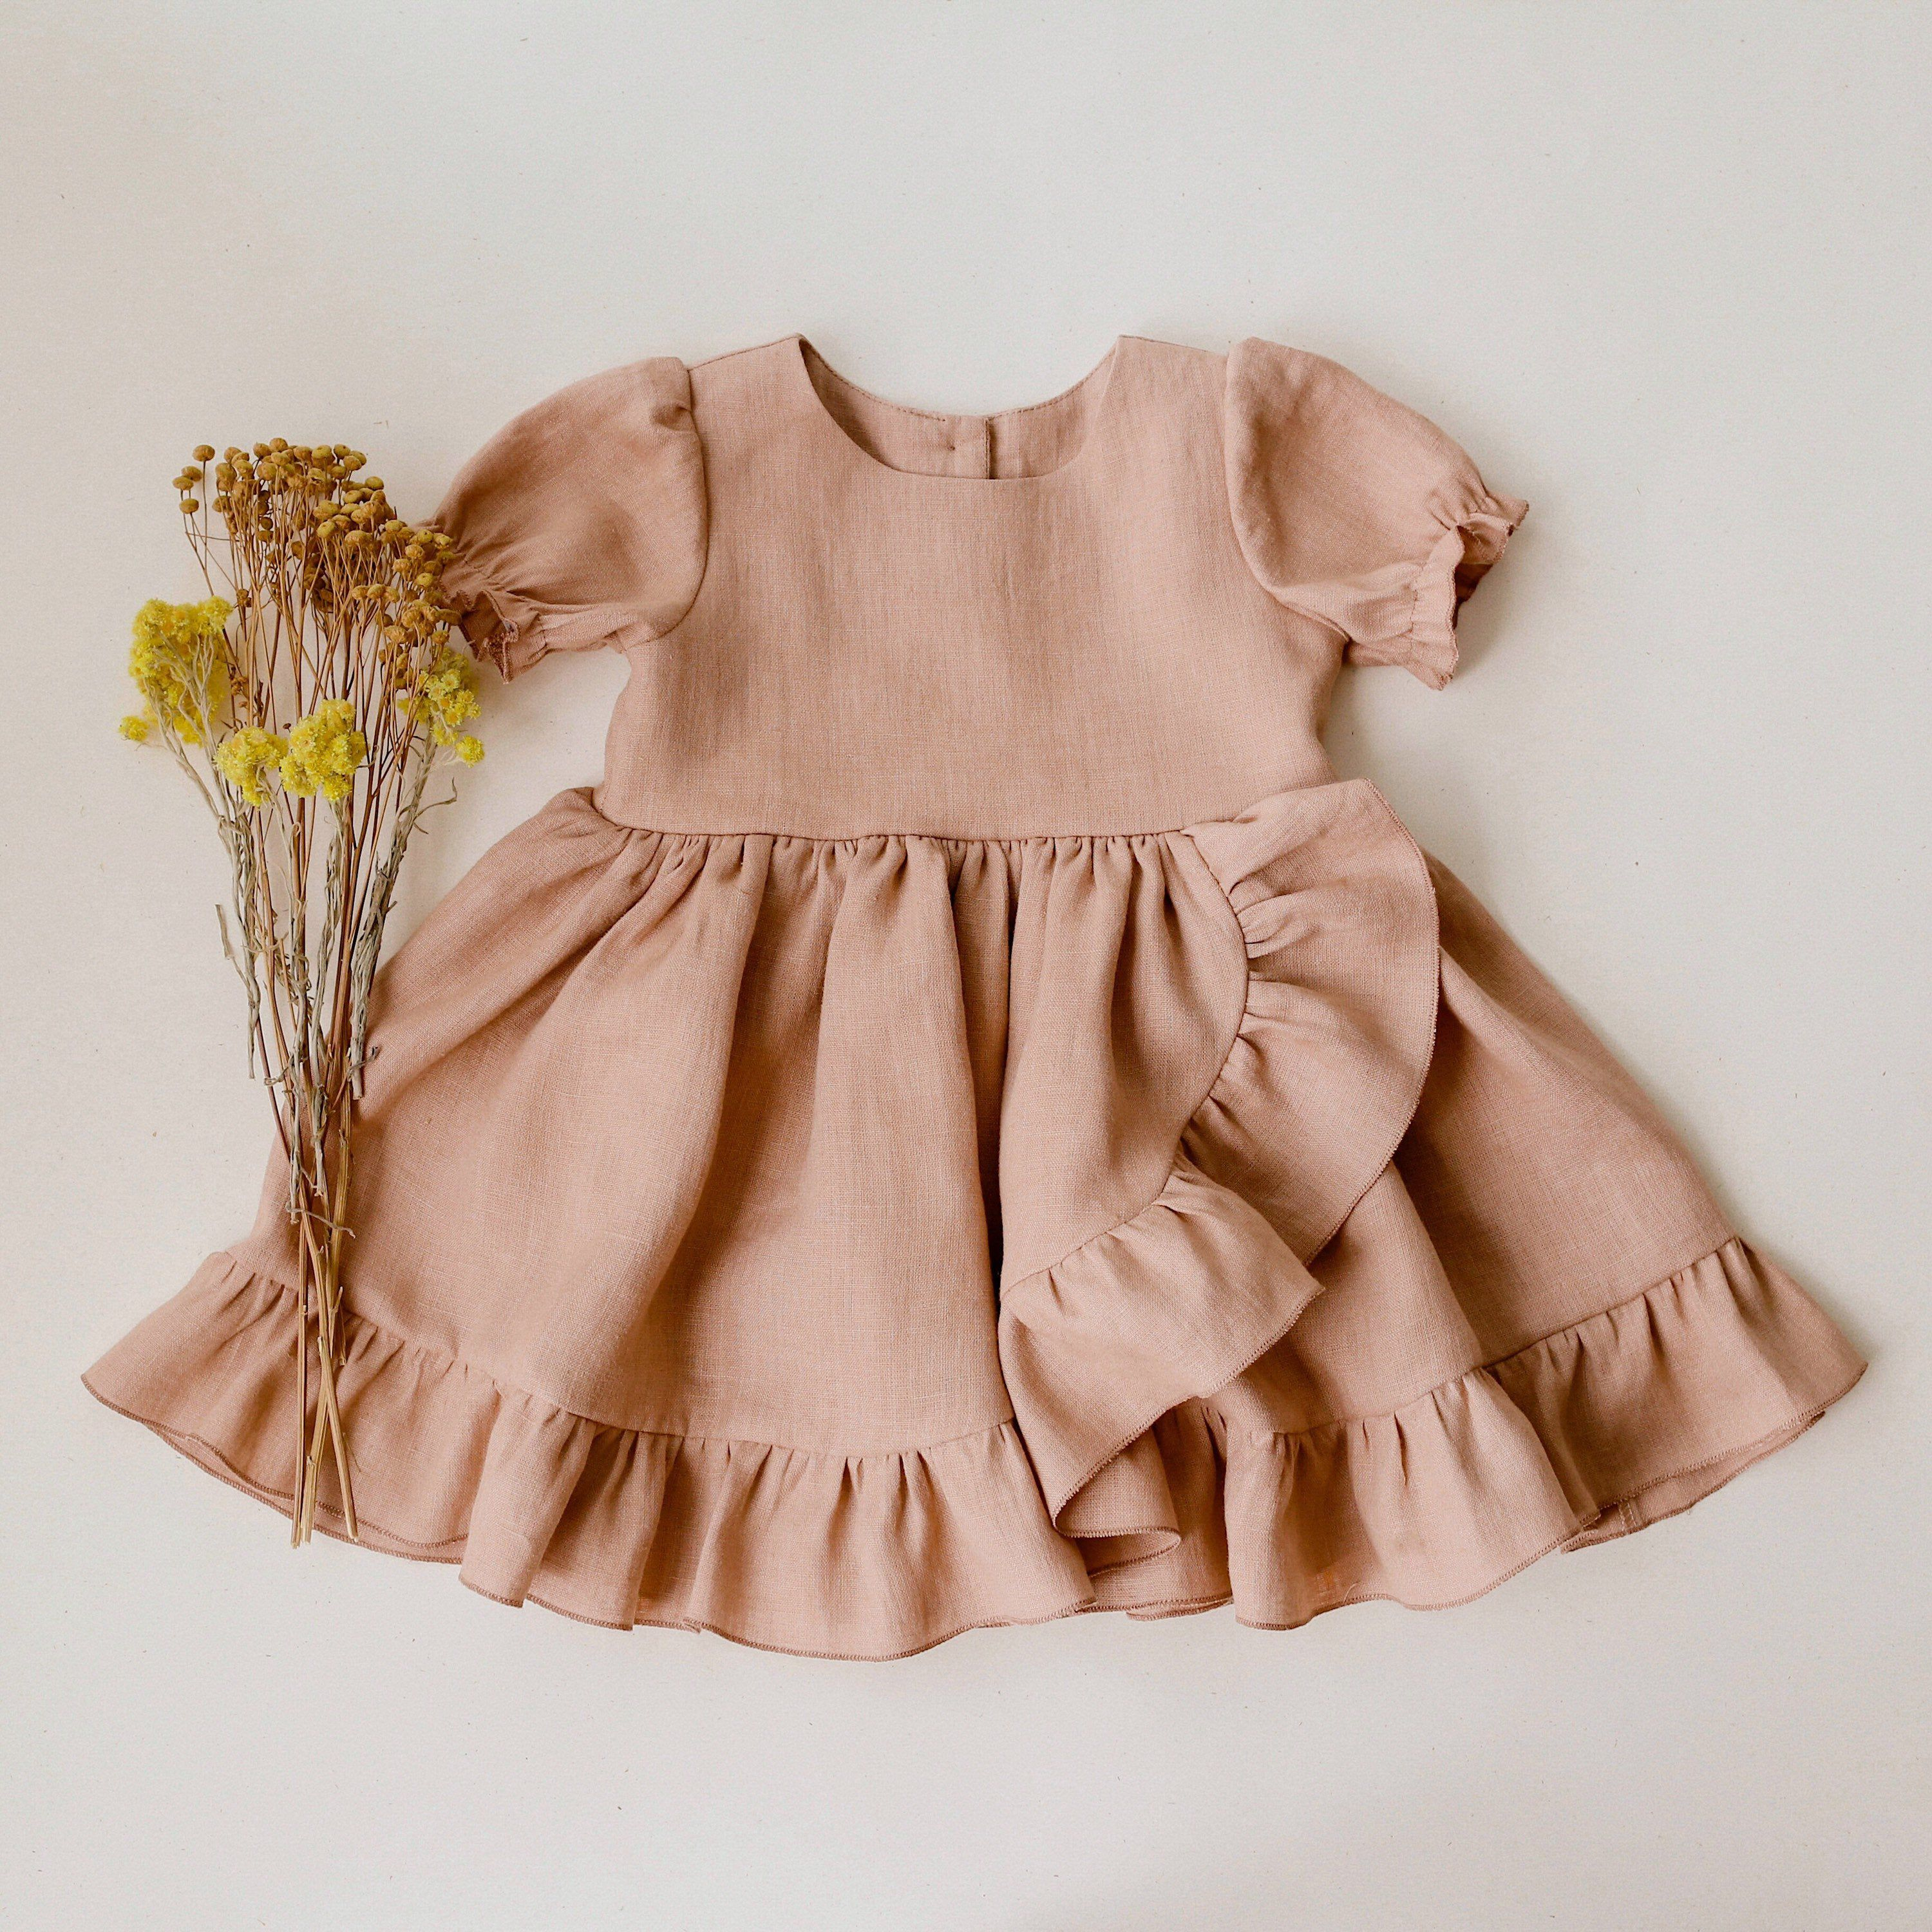 Clay Linen Dress with Ruffle Skirt CHOICE OF COLORS  Etsy  Baby